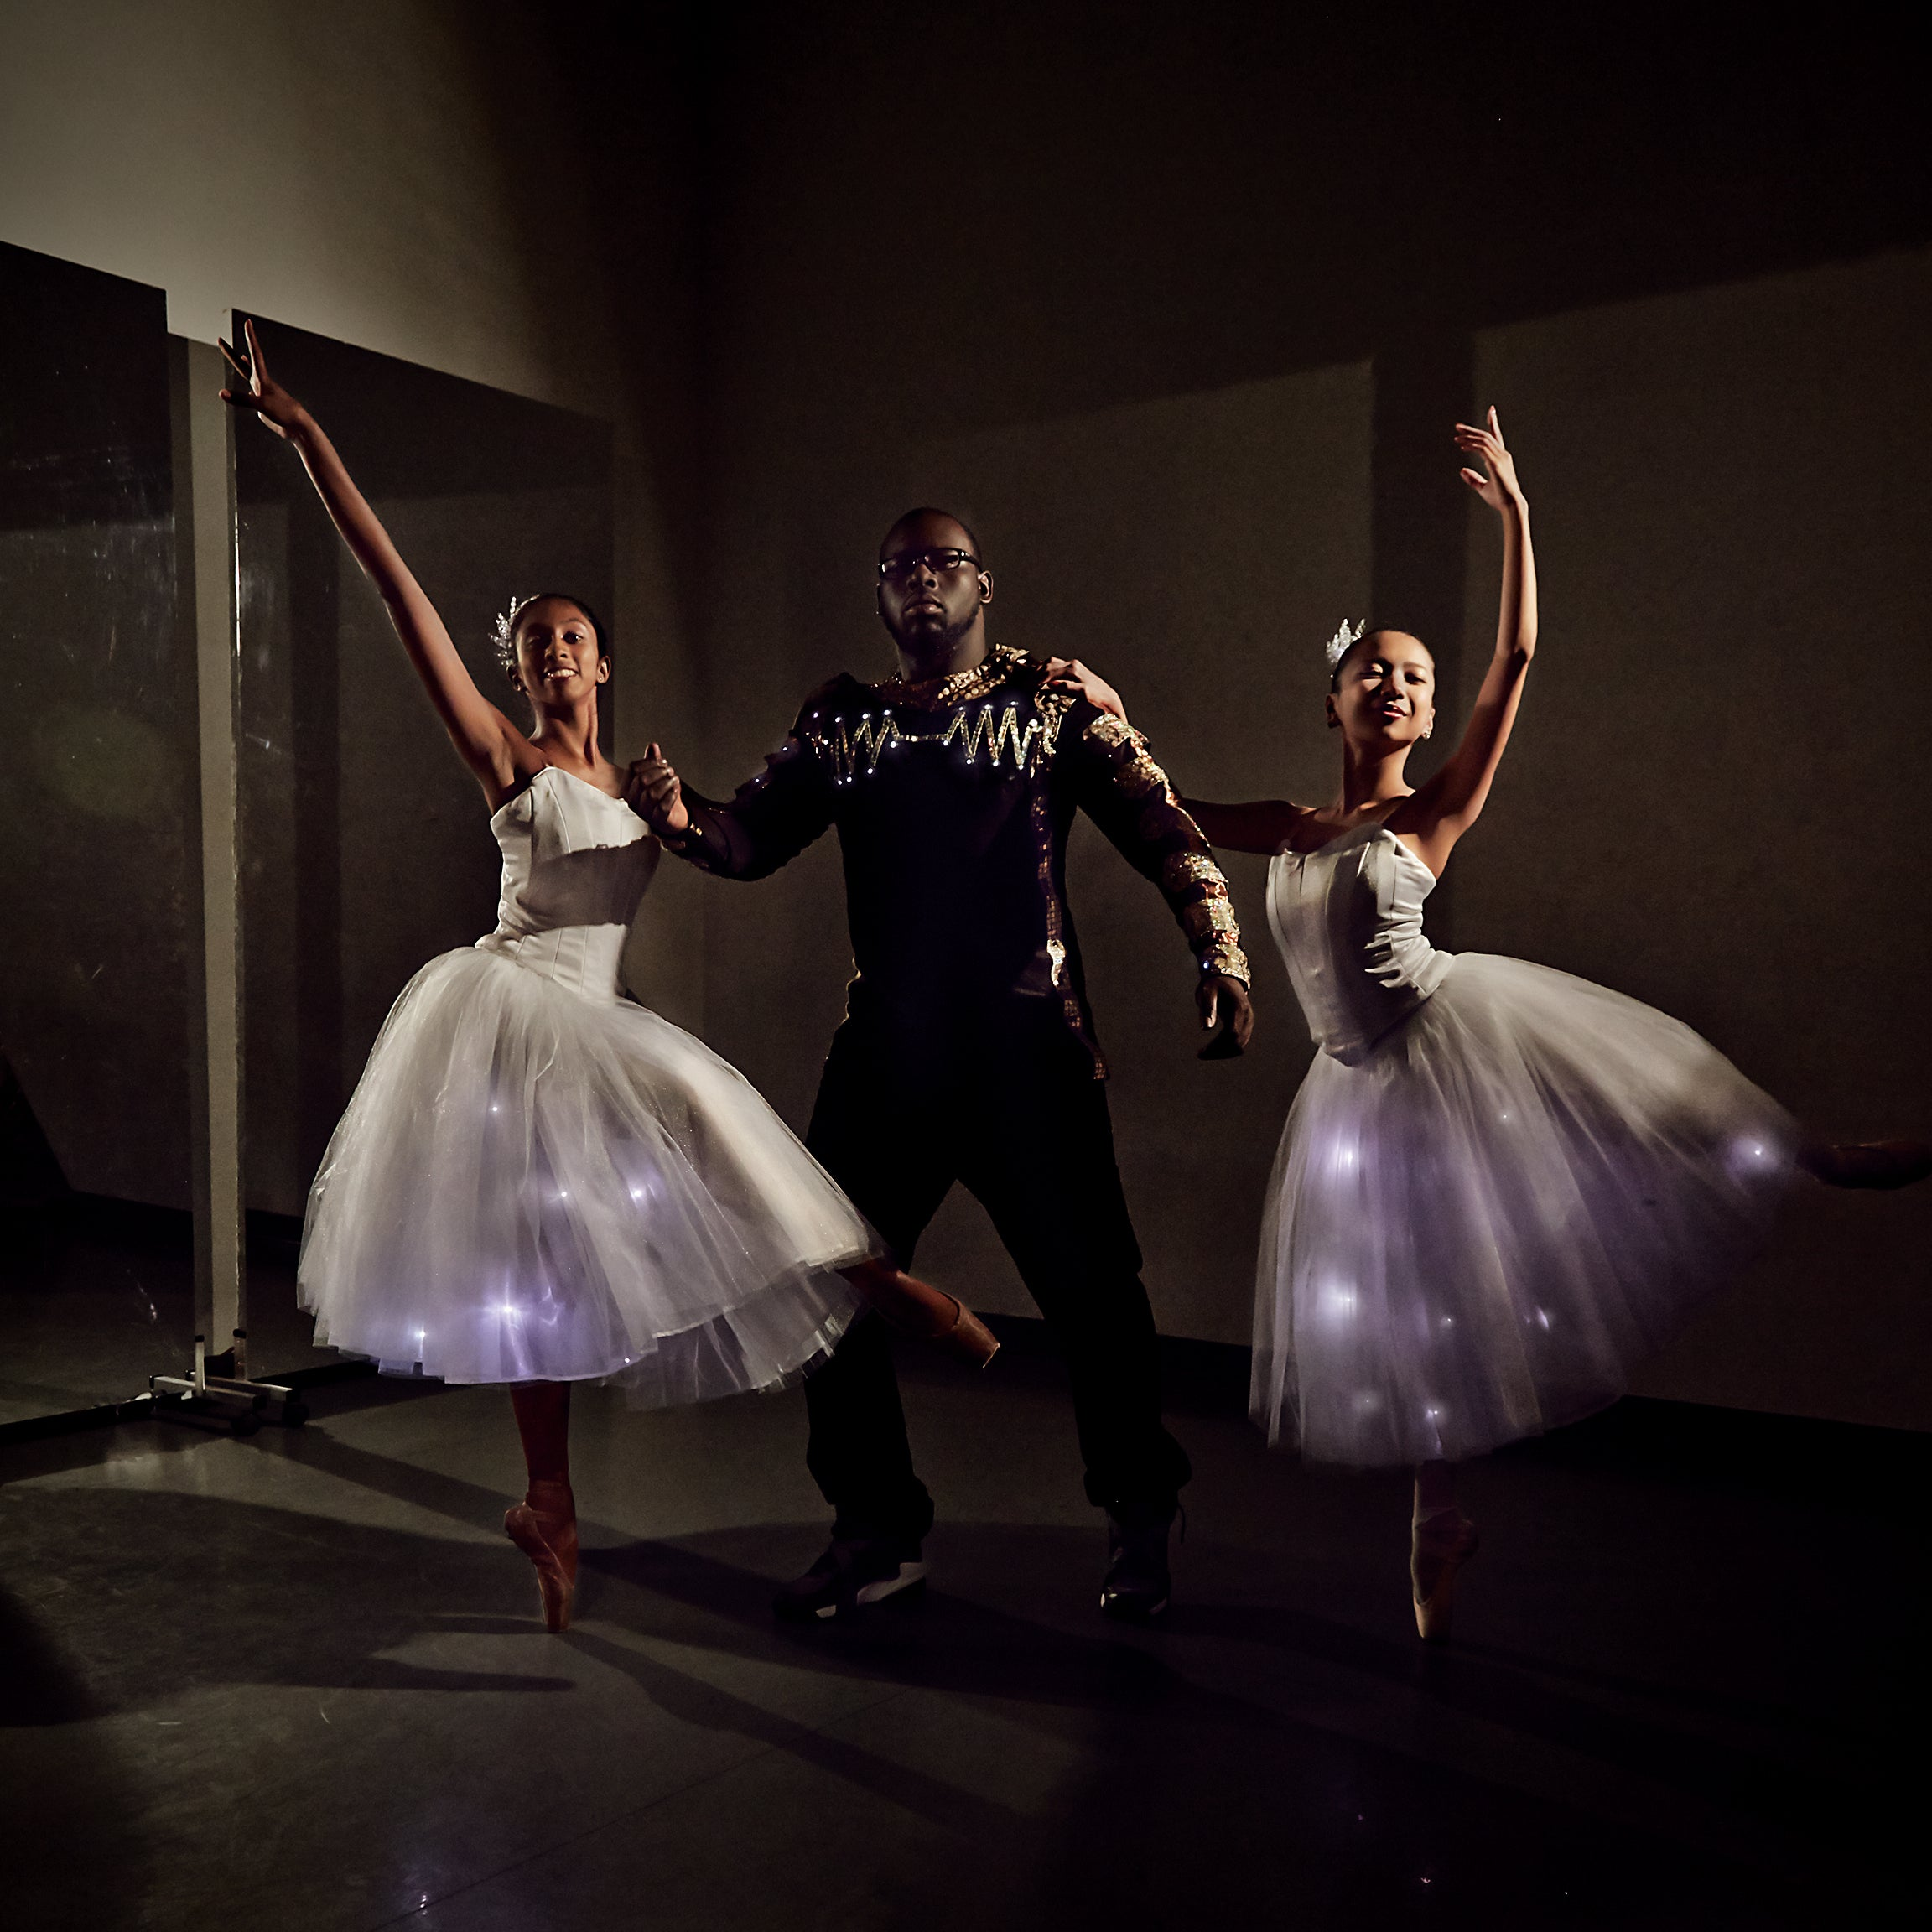 DIY Electrified Outfits Light Up The Ballet